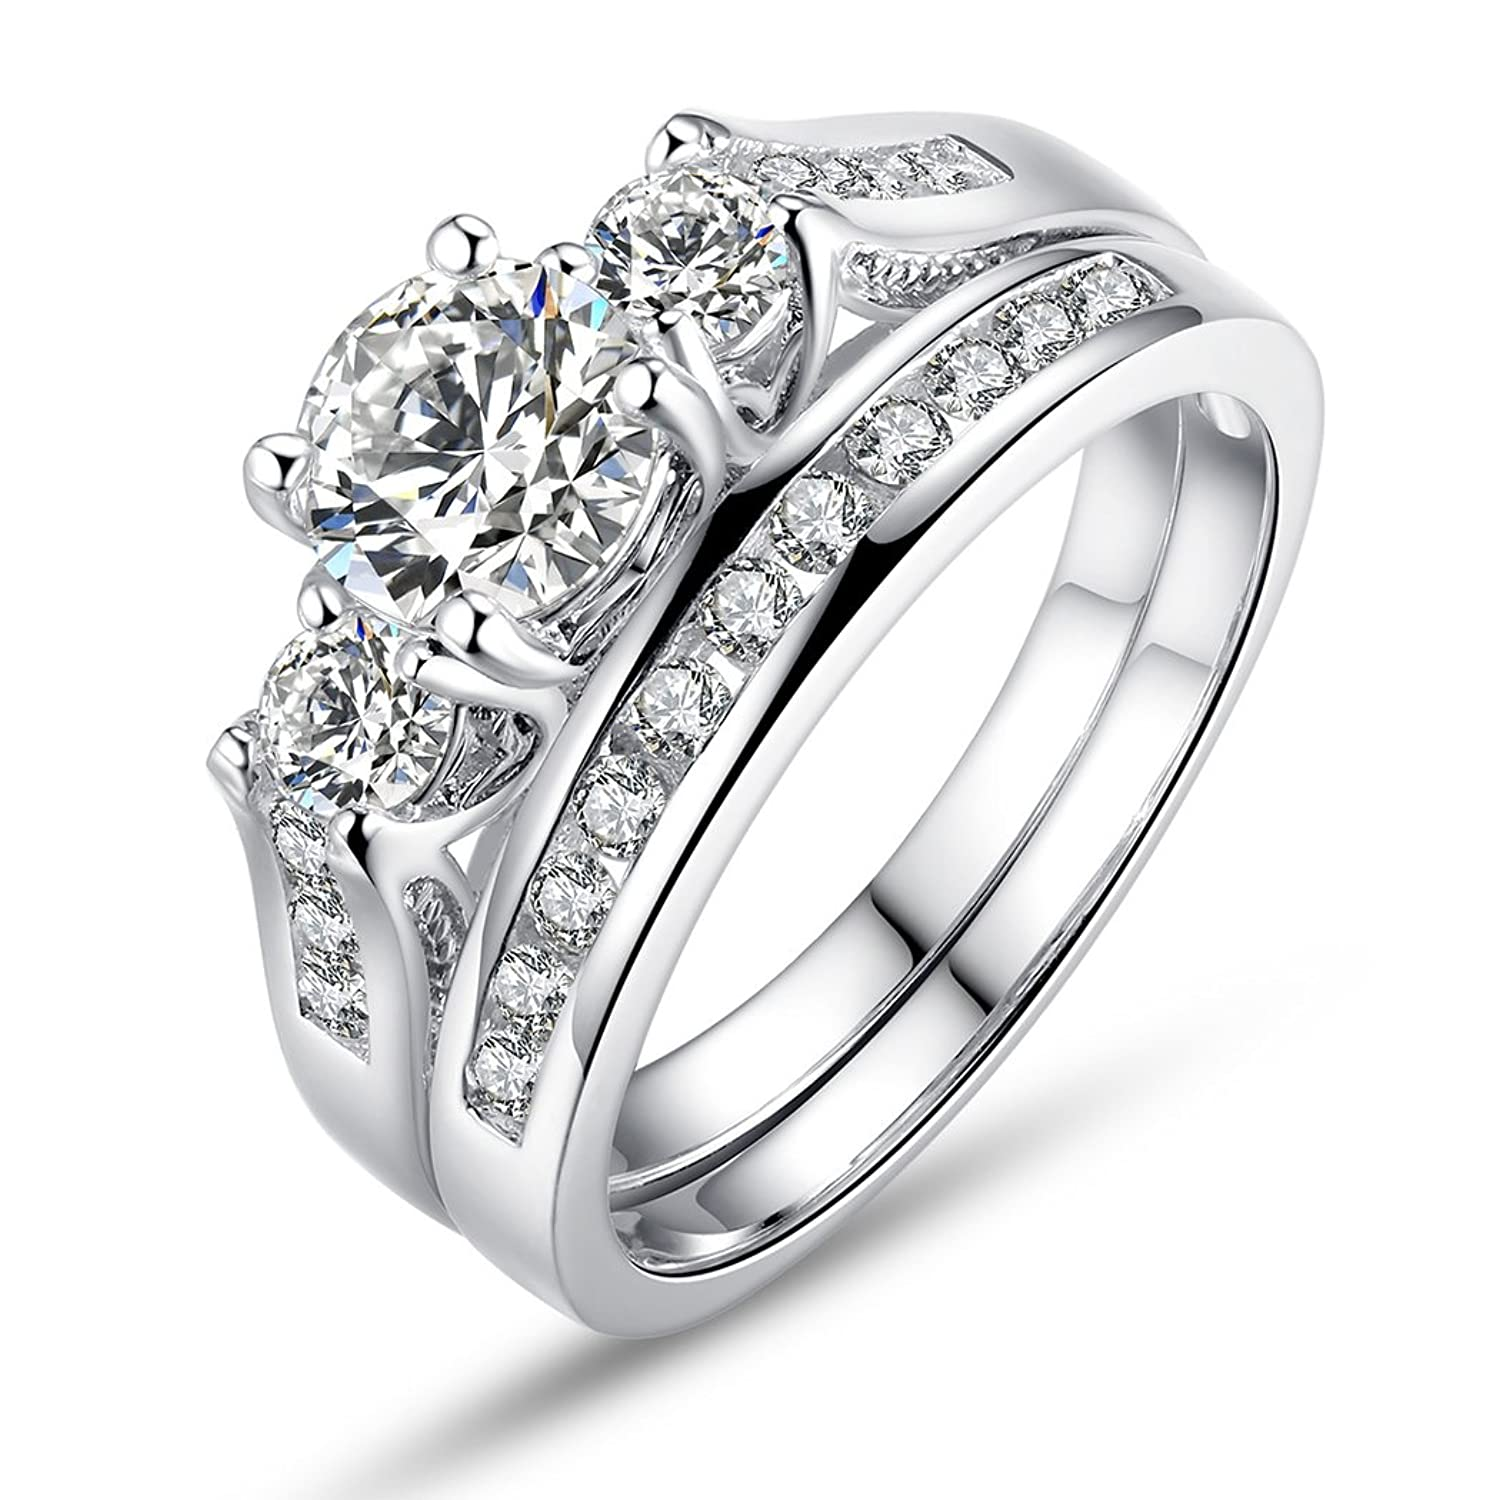 bands set platinum sm silver princess engagement wedding unique view all jewelry cz sets cost band round rings bling ring sterling